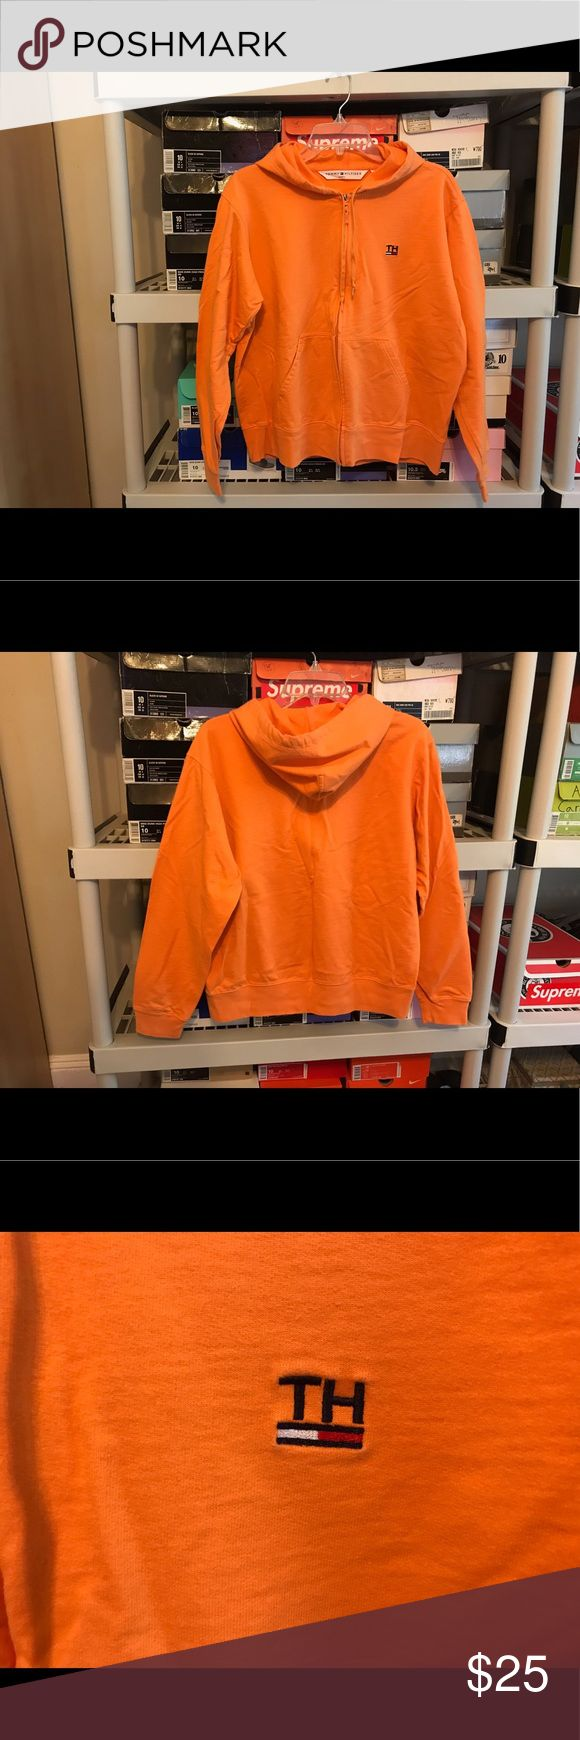 Vintage Tommy Hilfiger Women's Orange Hoodie Sz L Vintage Tommy Hilfiger Women's Orange Spell Out Logo Zip Up Hoodie Sweater   Size Large (refer to measurements)  Good condition!  Pit To Pit: 22 inches  Neck To Bottom: 23 inches  All measurements are taken with items laying flat!  If you have any questions please message me thanks!  Check out my other listings! Tommy Hilfiger Sweaters